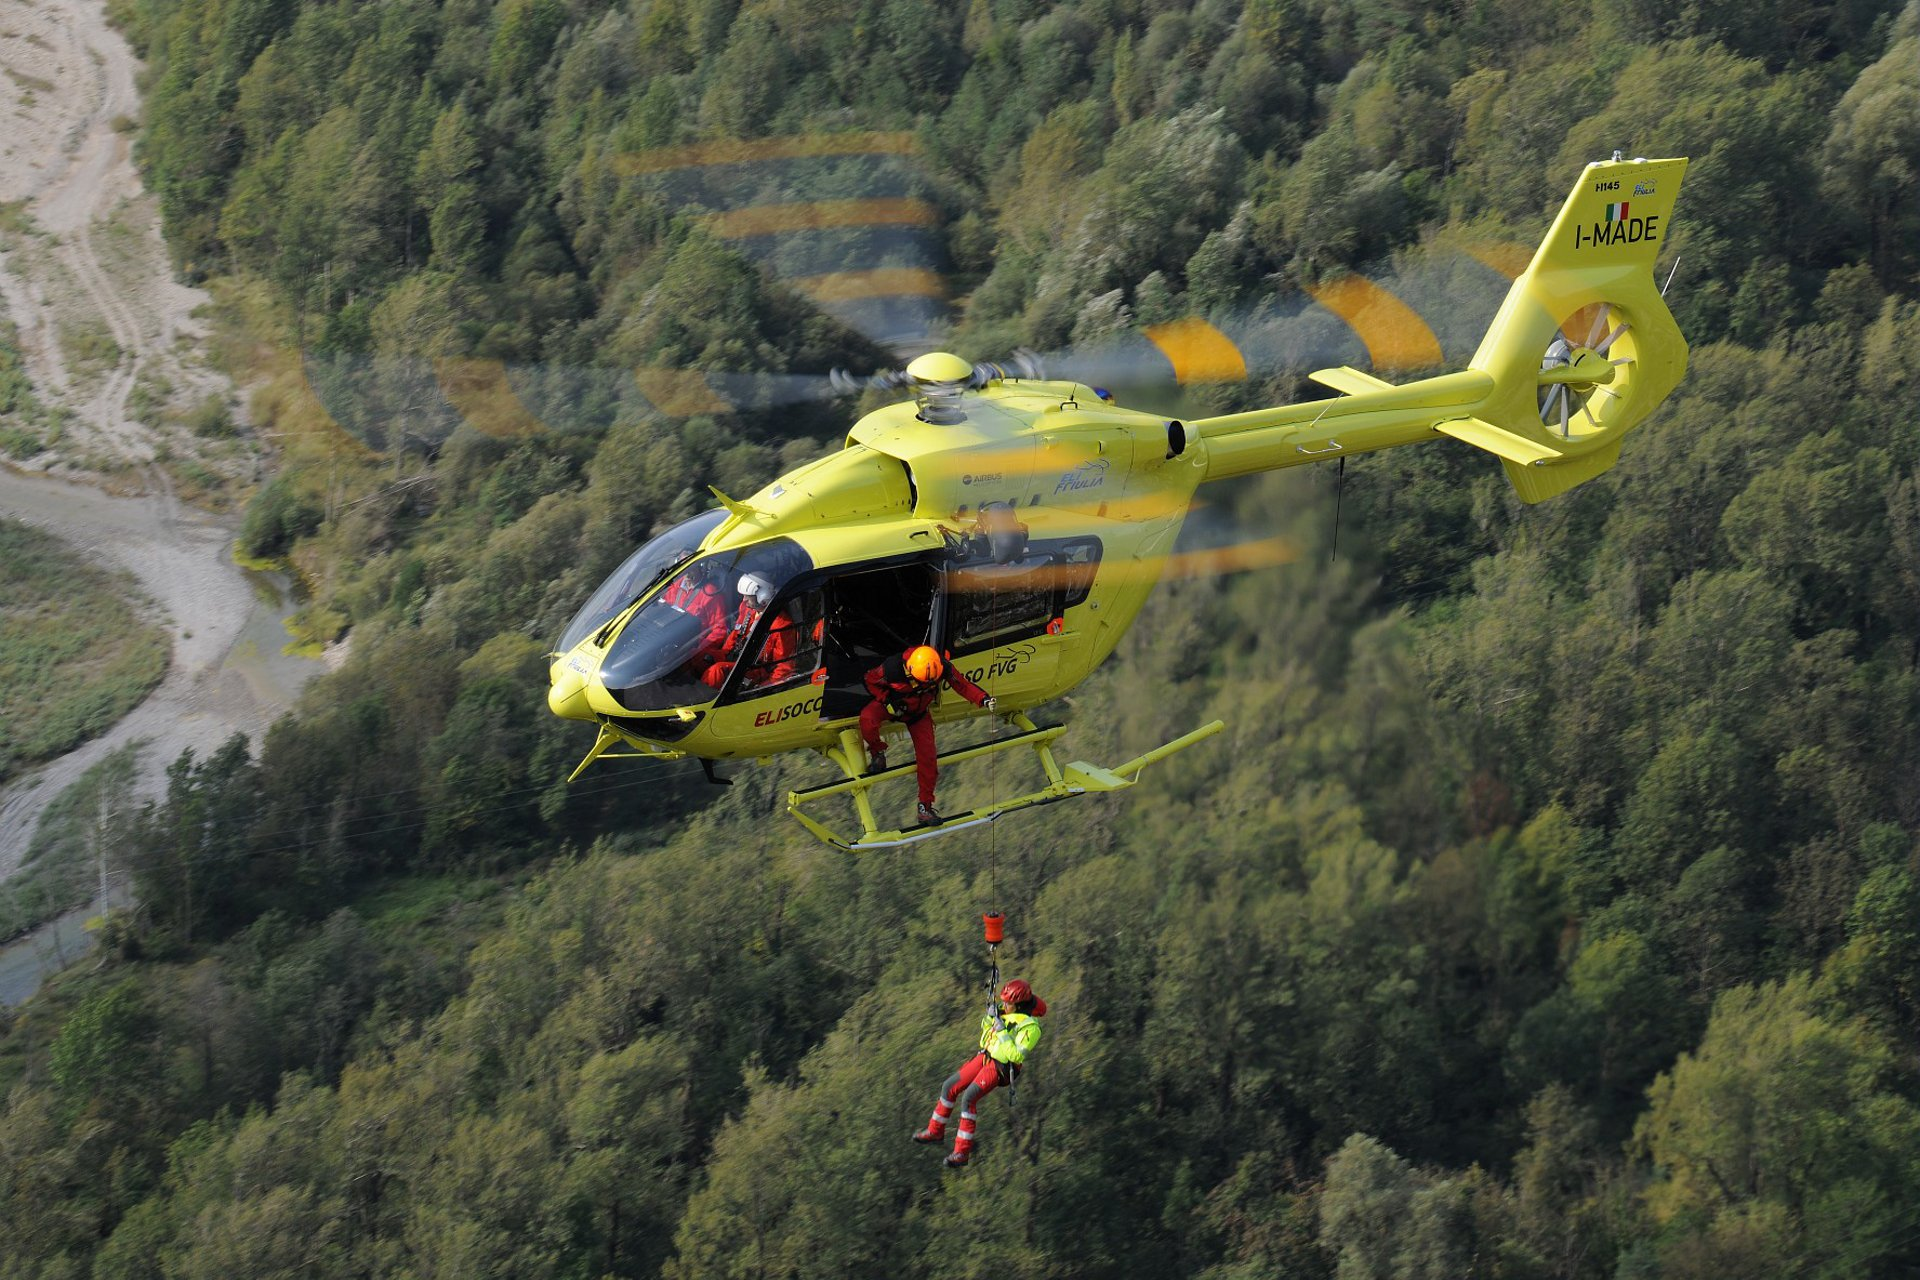 Founded in 1971, Elifriulia is Italy's longest-running operator of rotorcraft, and uses the Airbus-built H145 for HEMS (Helicopter Emergency Medical Services)